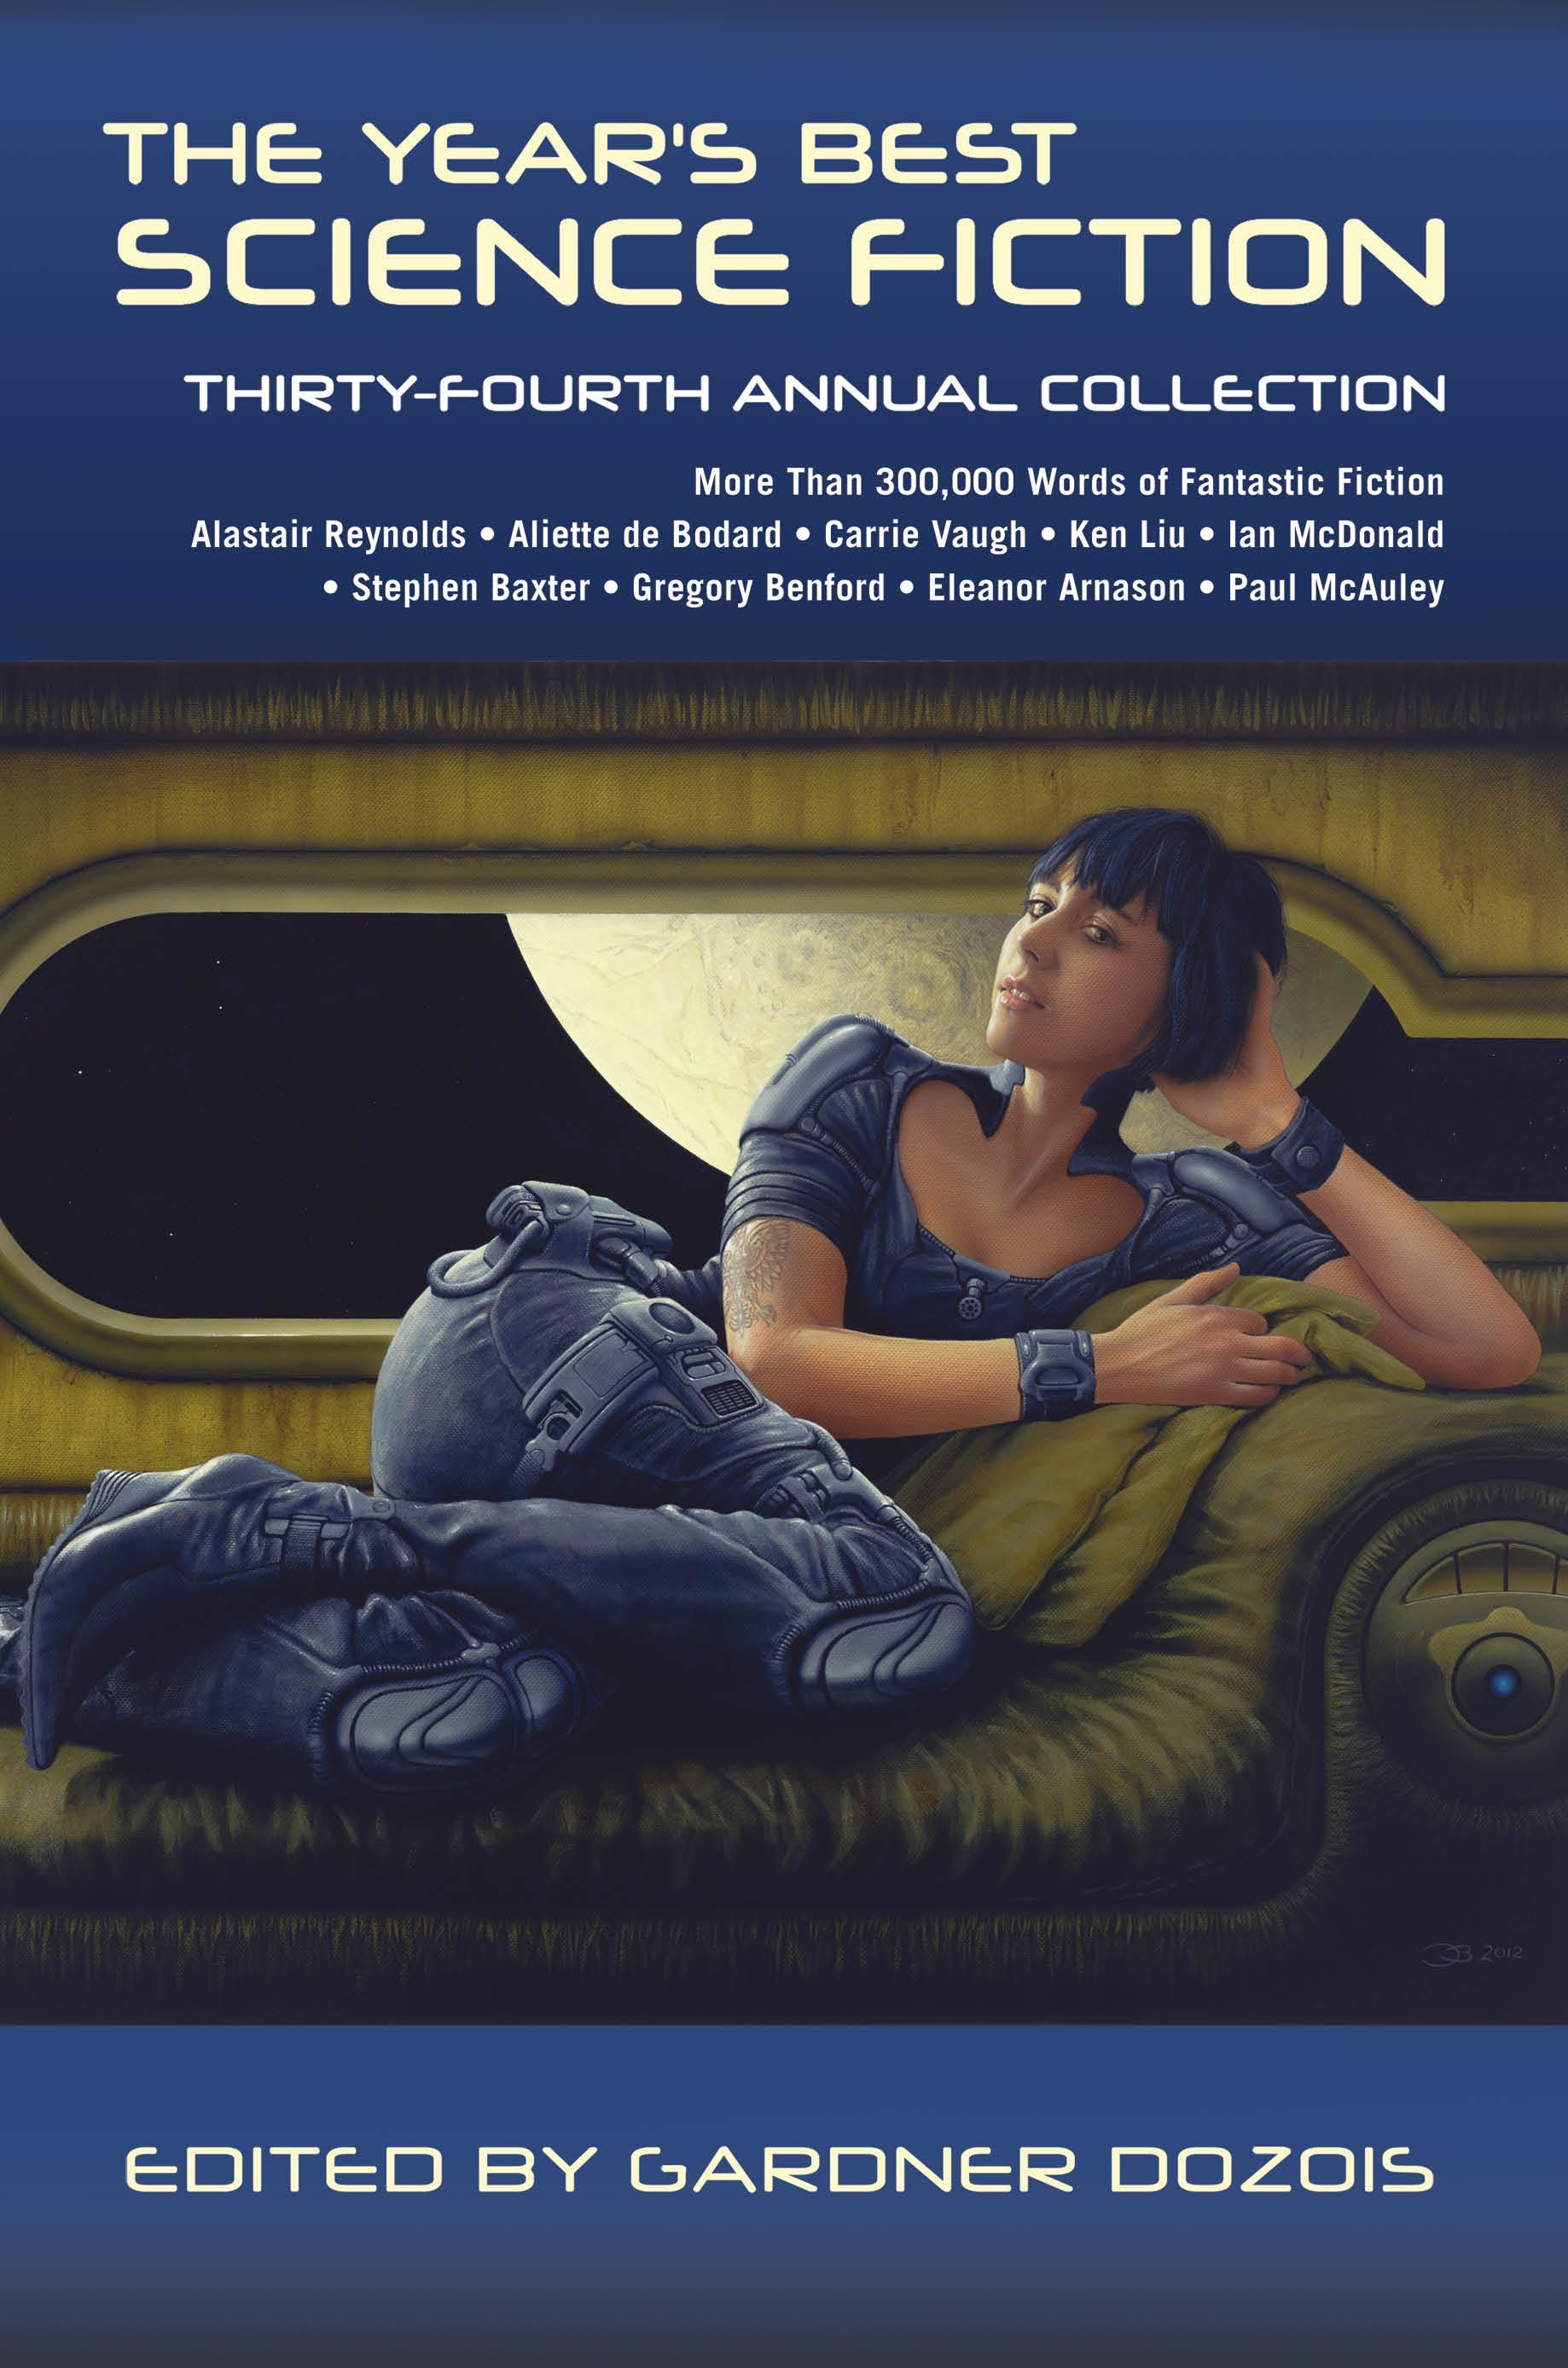 Image of The Year's Best Science Fiction: Thirty-Fourth Annual Collection